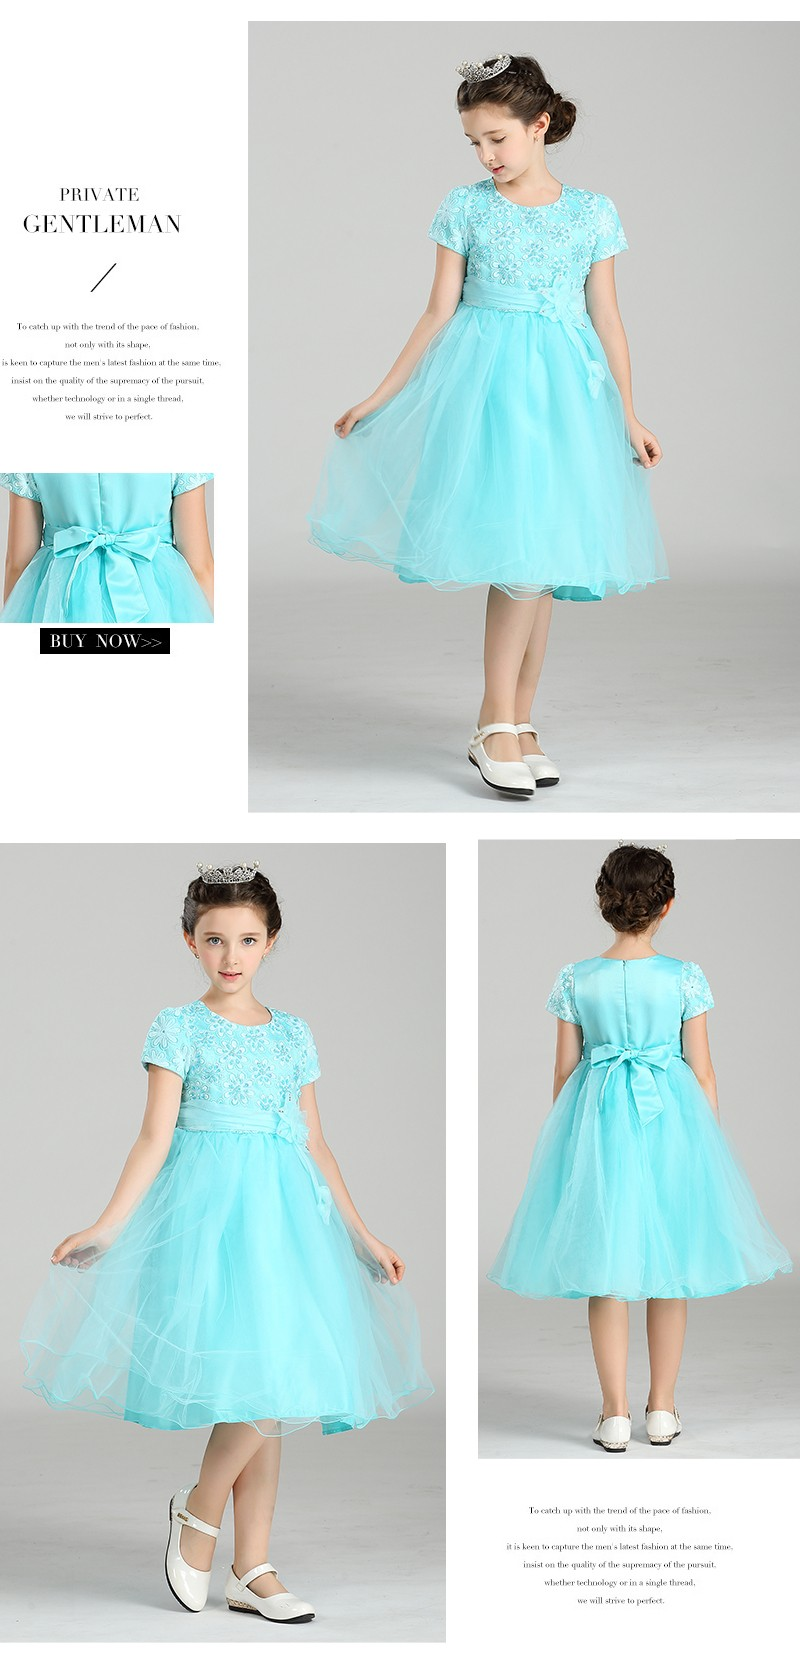 Lace Party Dress For Little Girls Beach Wedding Party Dress Wear For Girls Lw3010 - Buy Latest Clothes For Girls,Beauty Clothes For Girls,Party ...